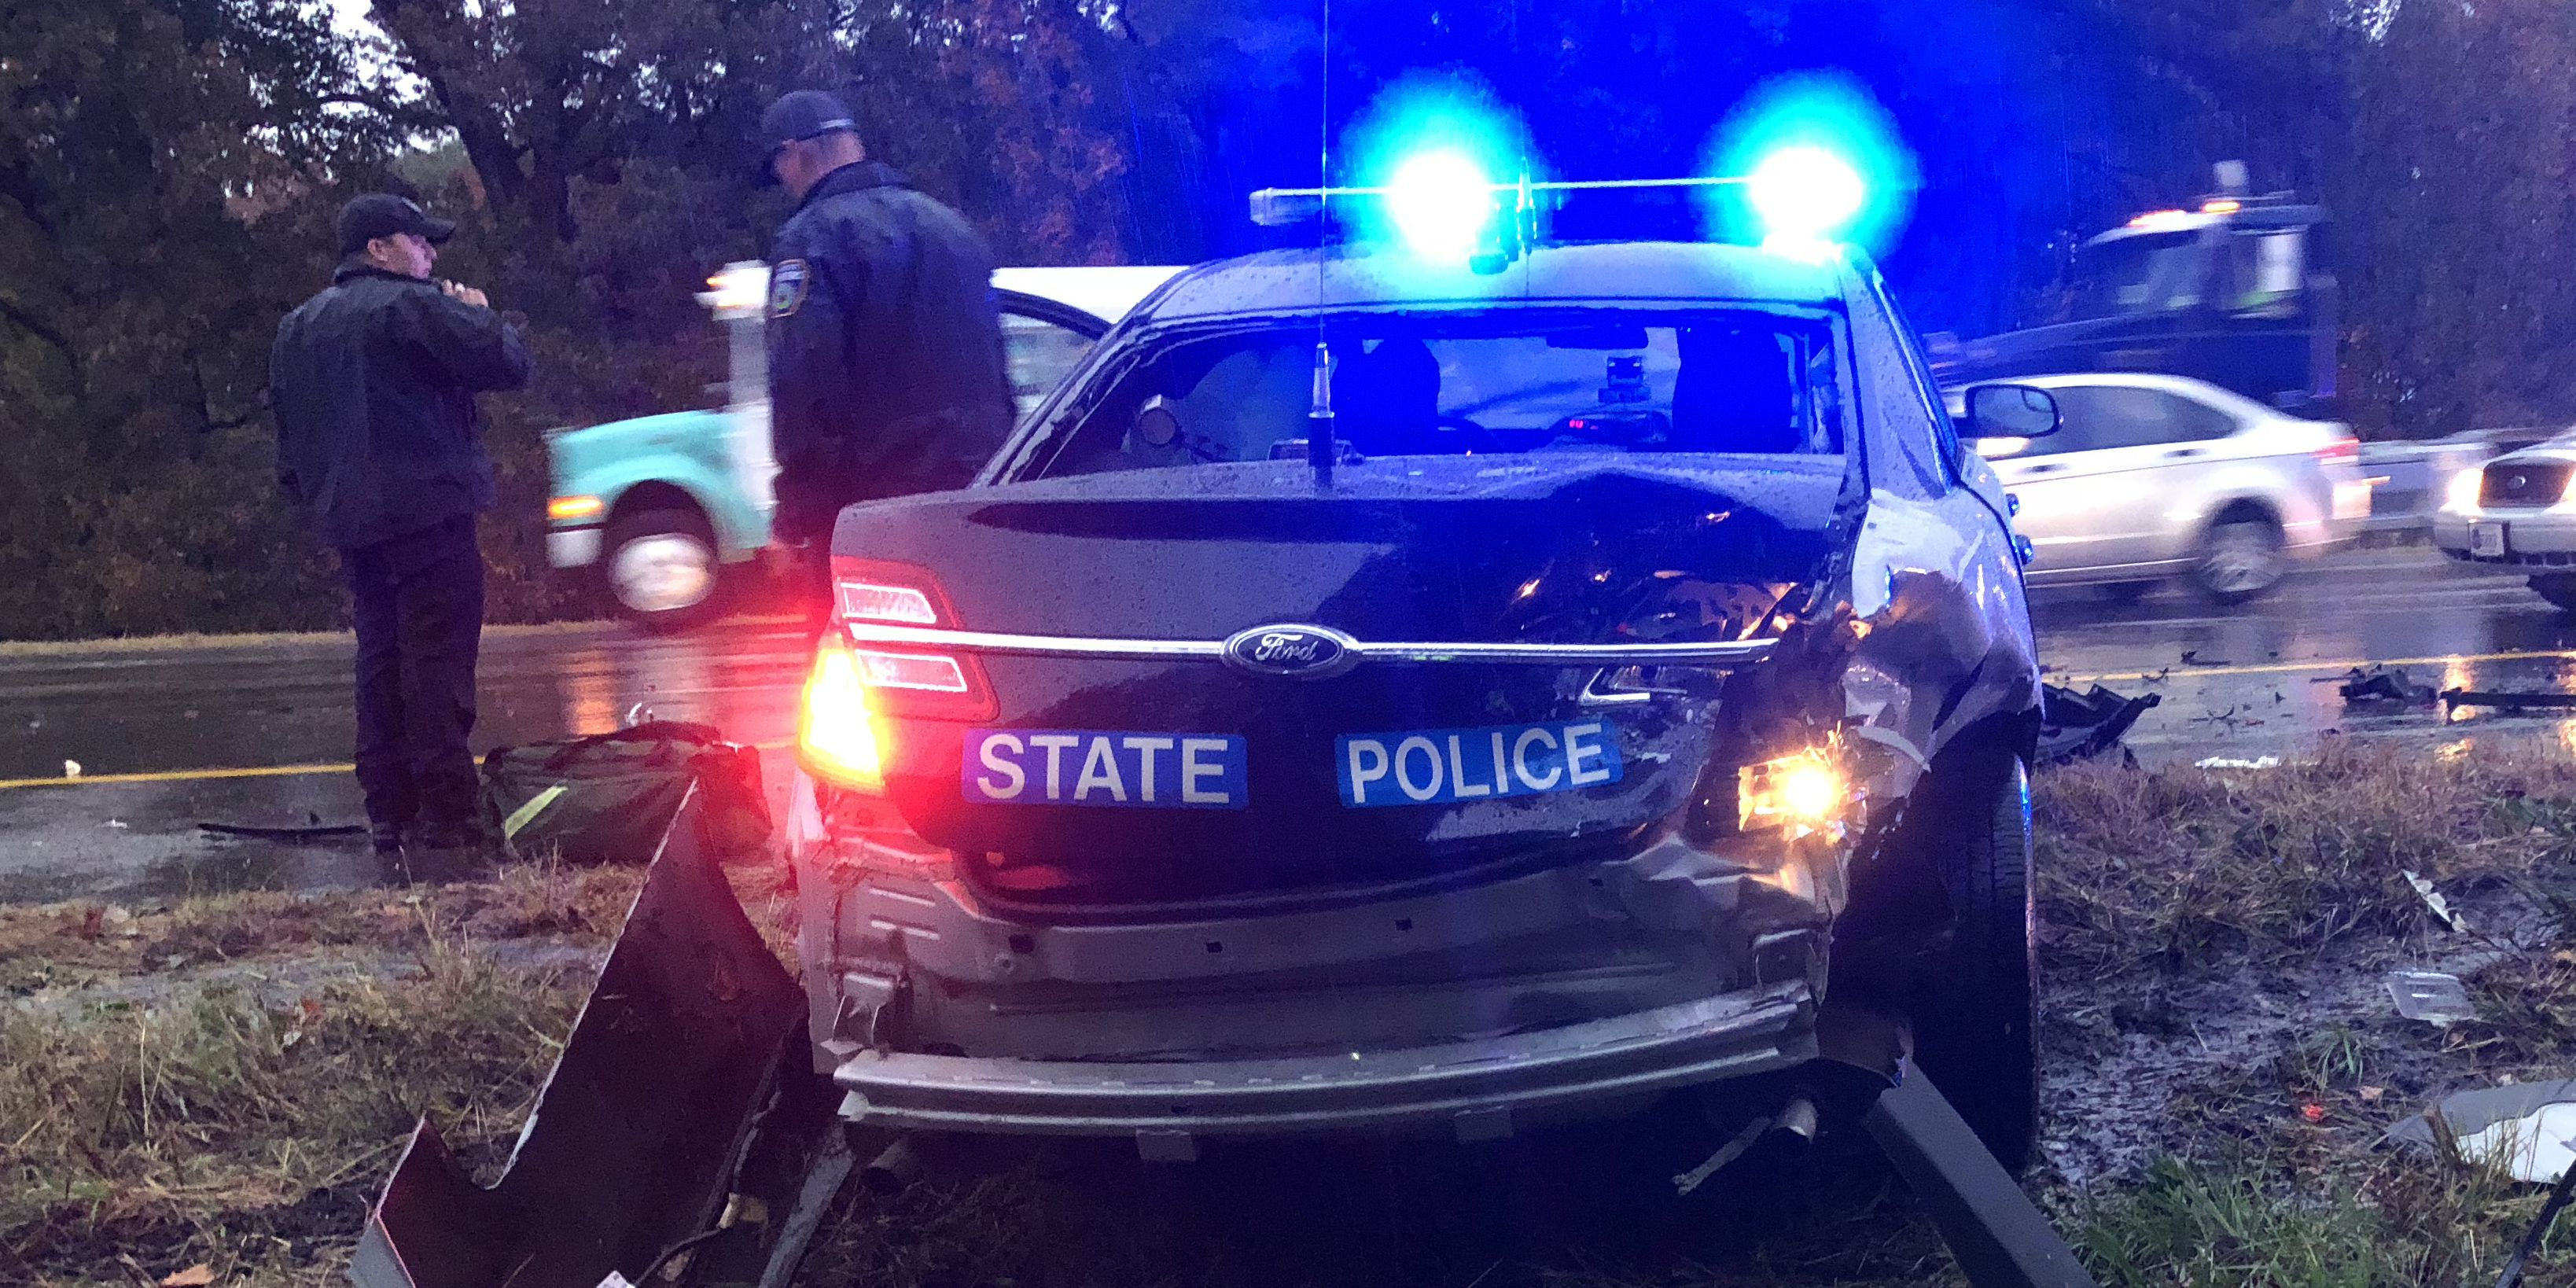 State trooper suffers minor injuries in I-295 crash